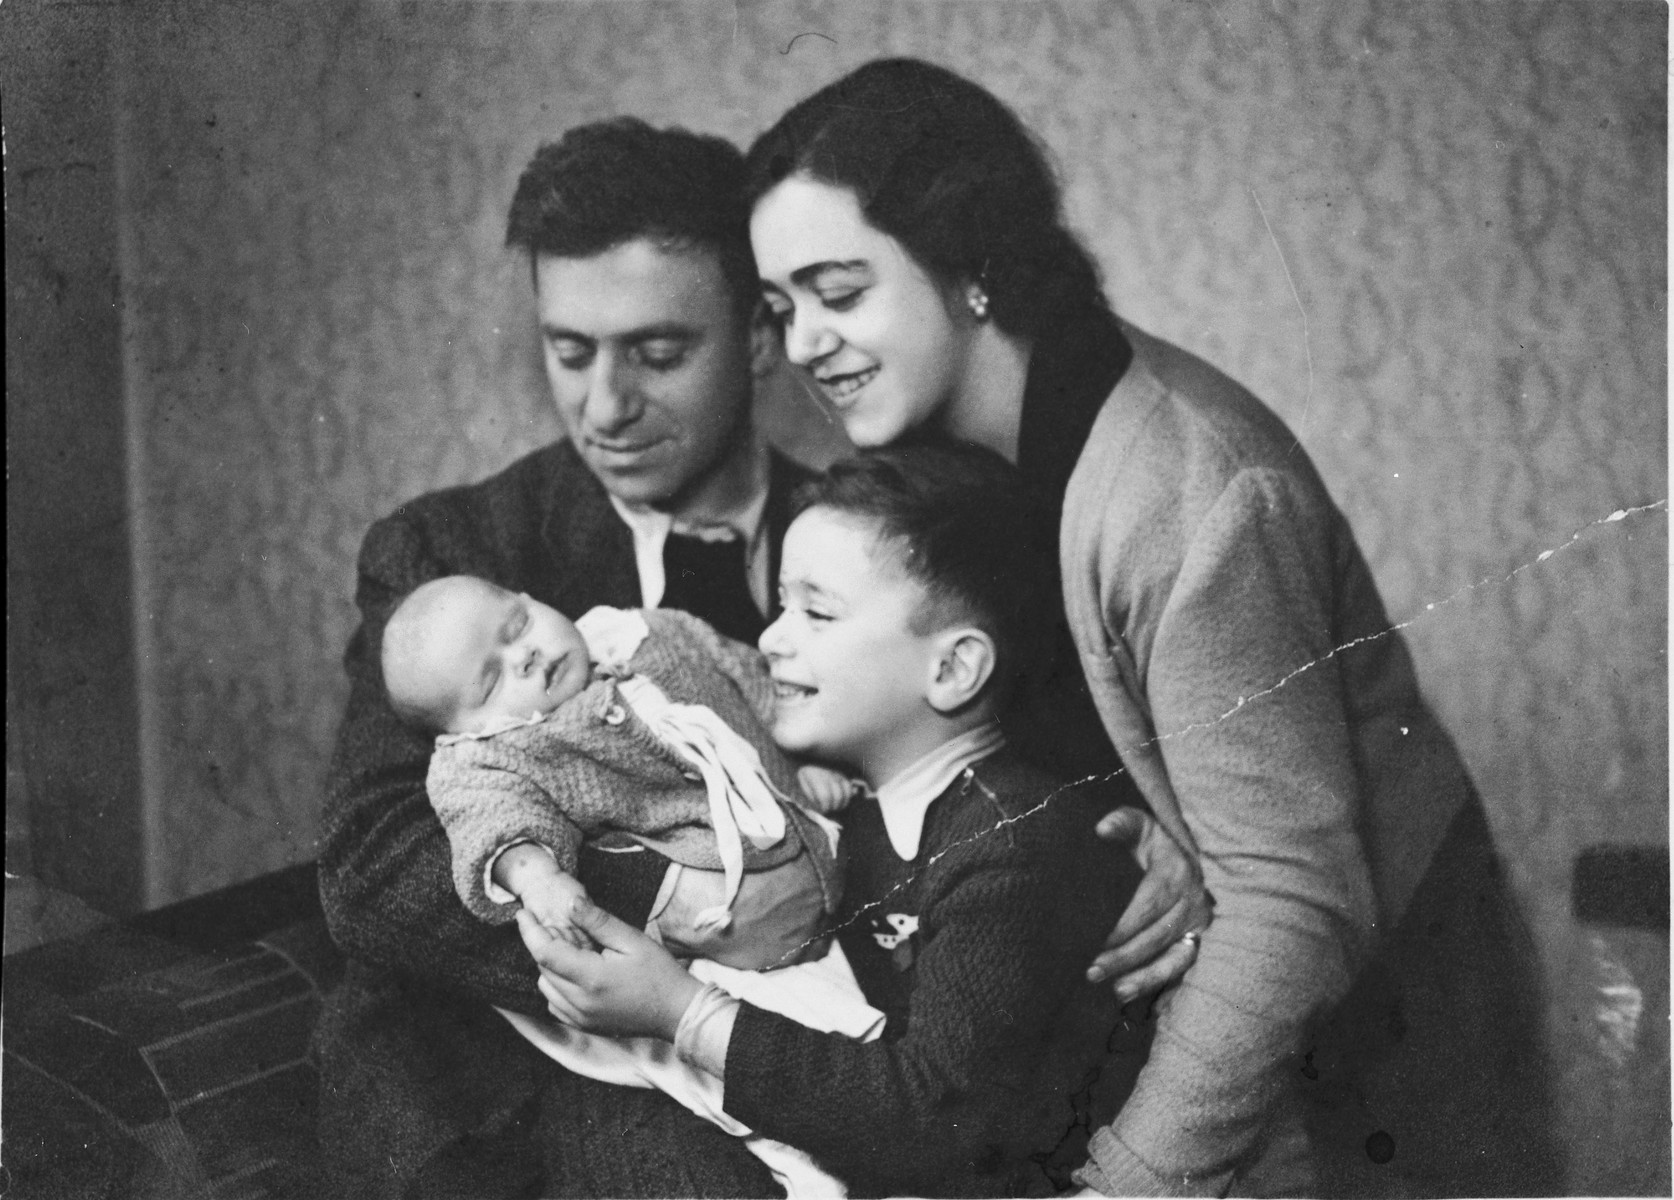 Gabriel and Victoria Avramoff pose with their son Misha and new born daughter Adela.